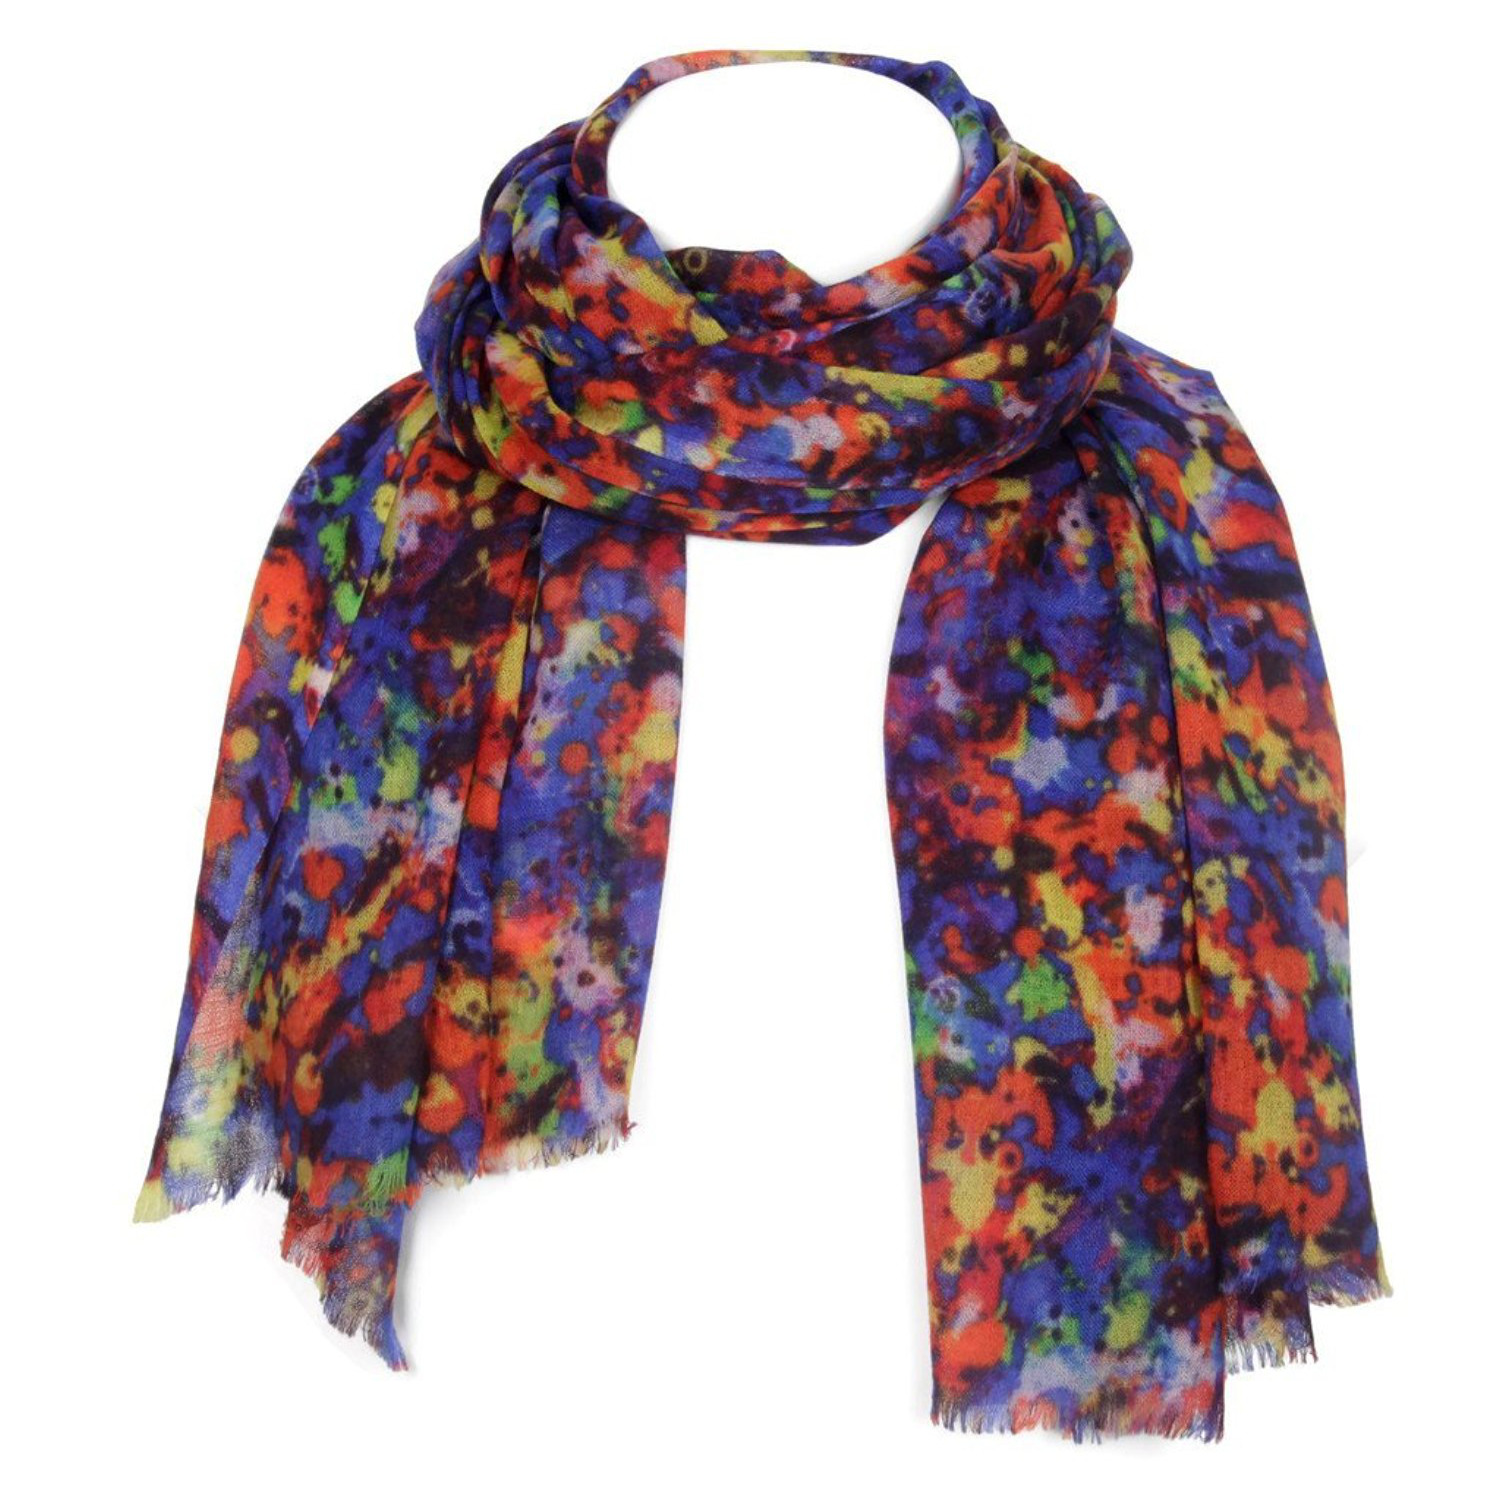 Women's Warm Scarf Ladies Girls Wraps Soft Shawls Scarves Stoles Kashmir KASHFAB